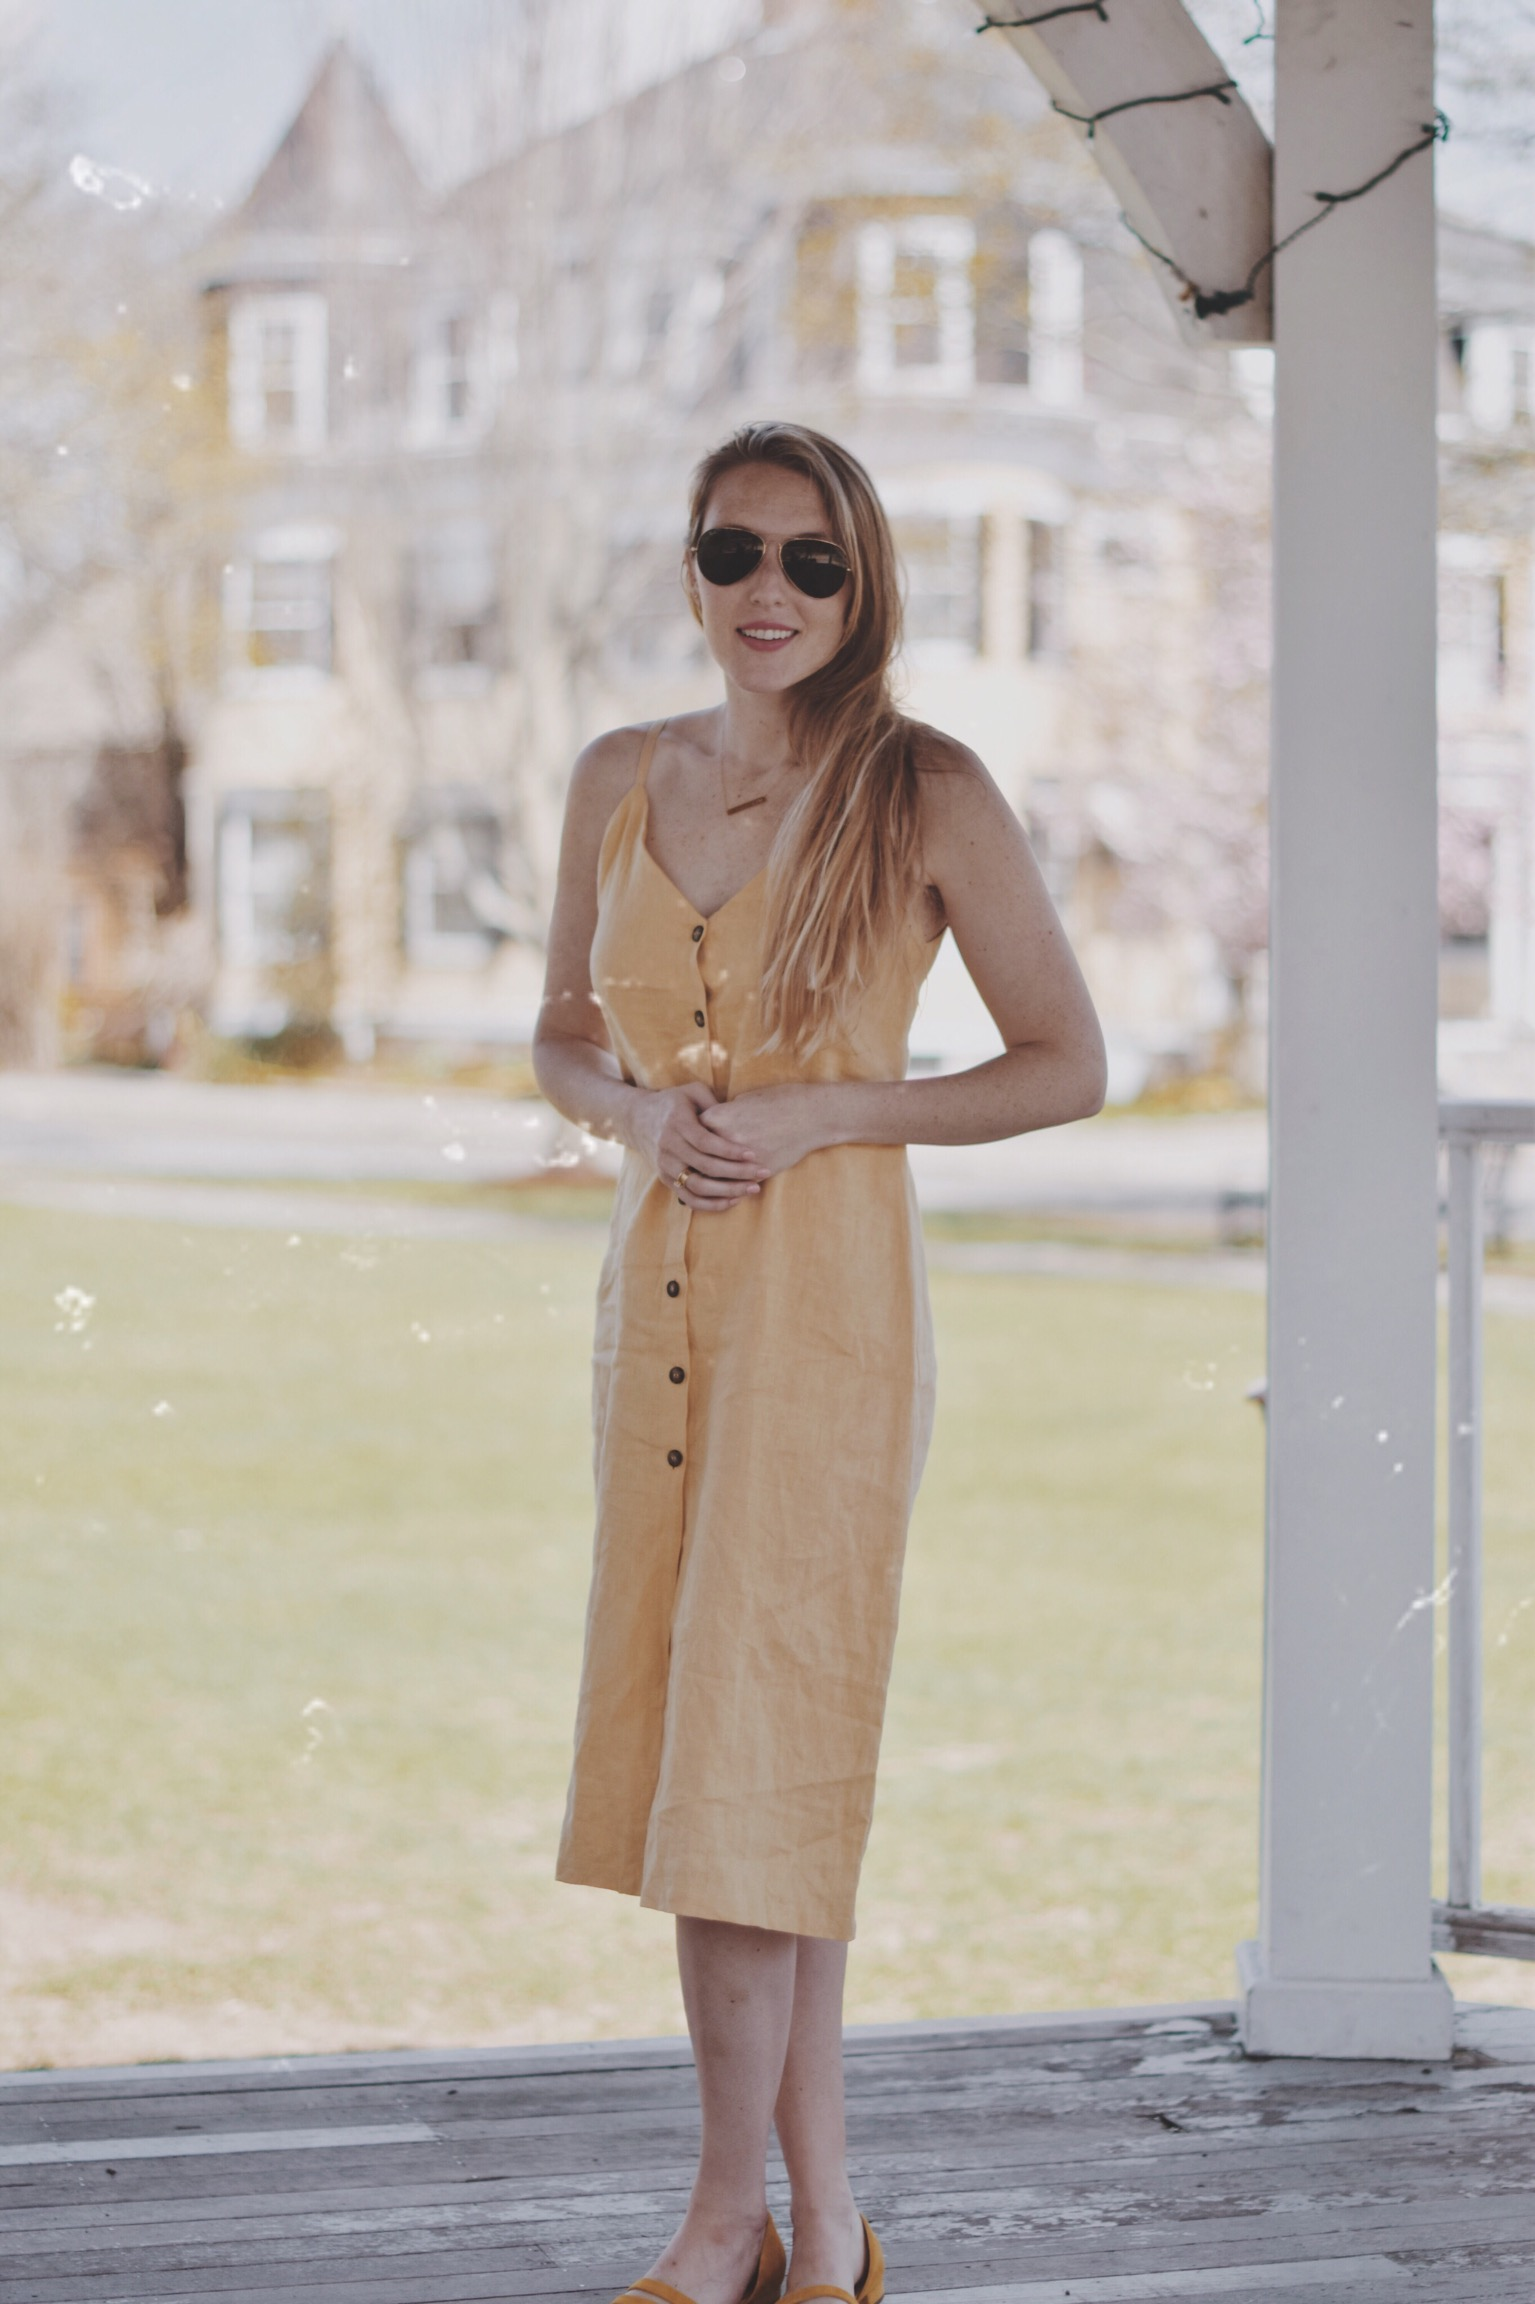 styling a canary yellow linen dress from Reformation as part of my summer capsule wardrobe